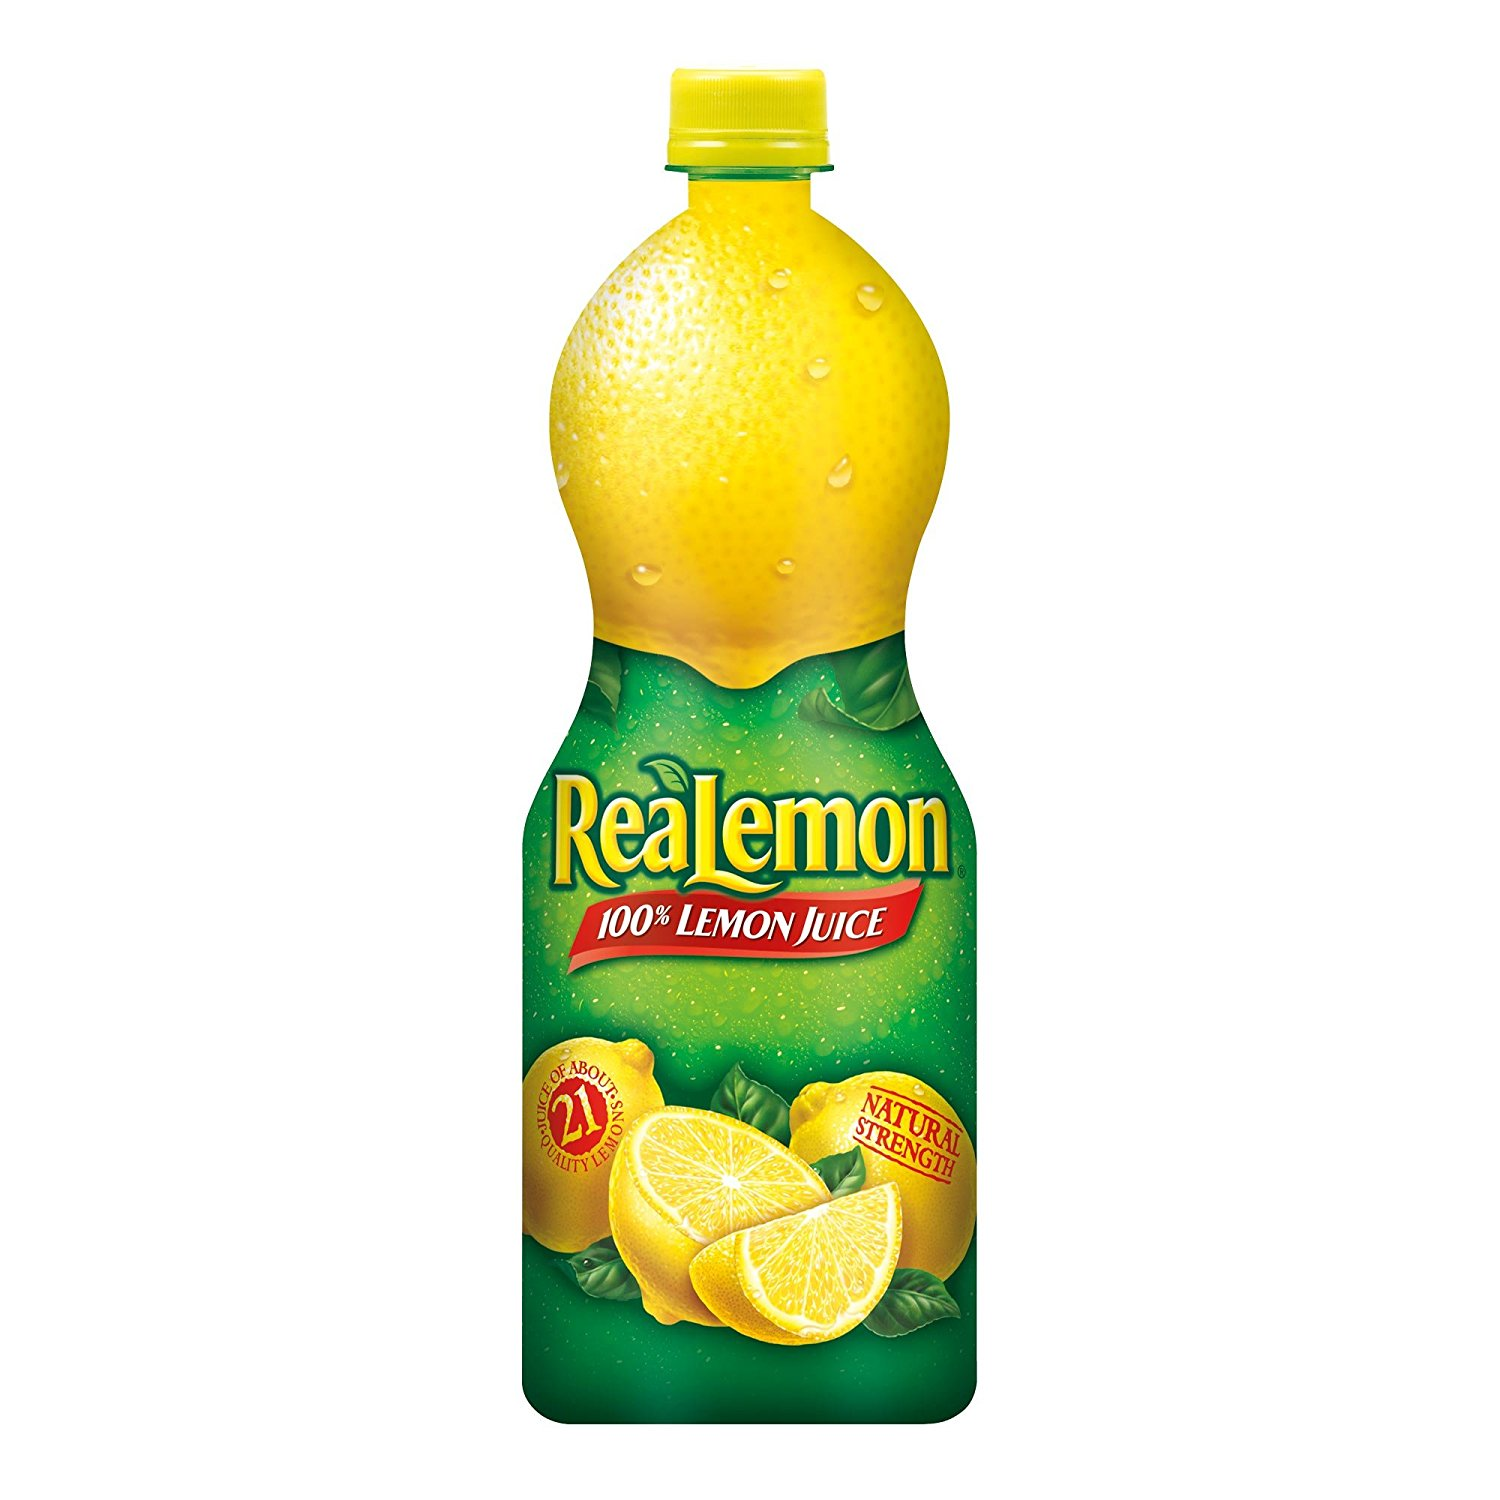 realemon lemon juice bottle